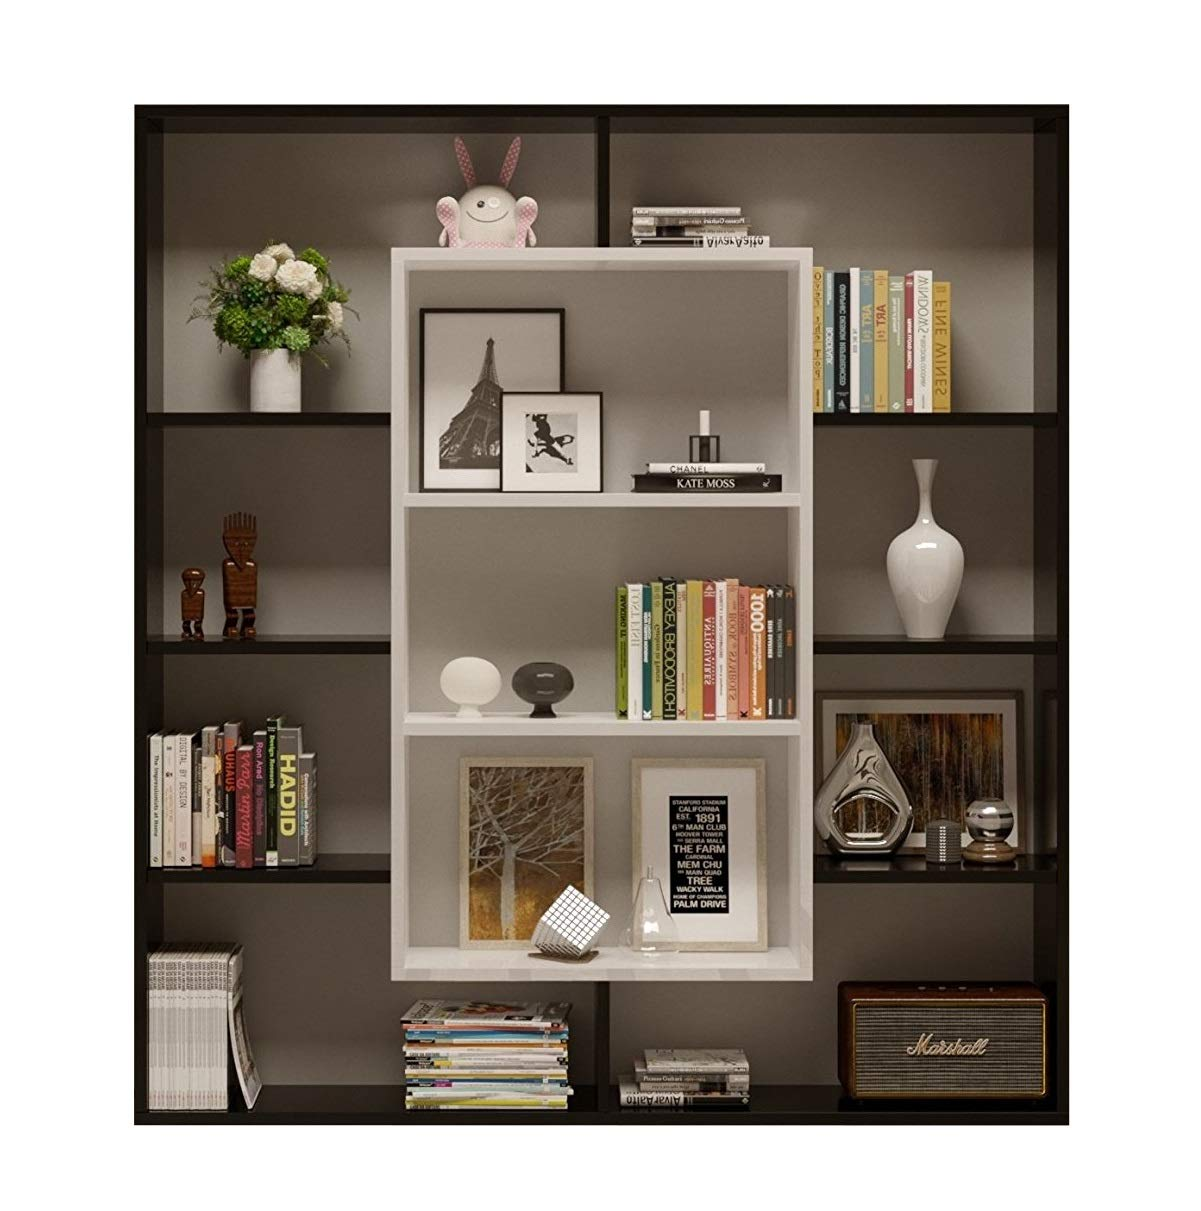 Bookcase Venus - Room Divider - Free Standing Shelving Unit for living room or office in a modern design (White) Homidea